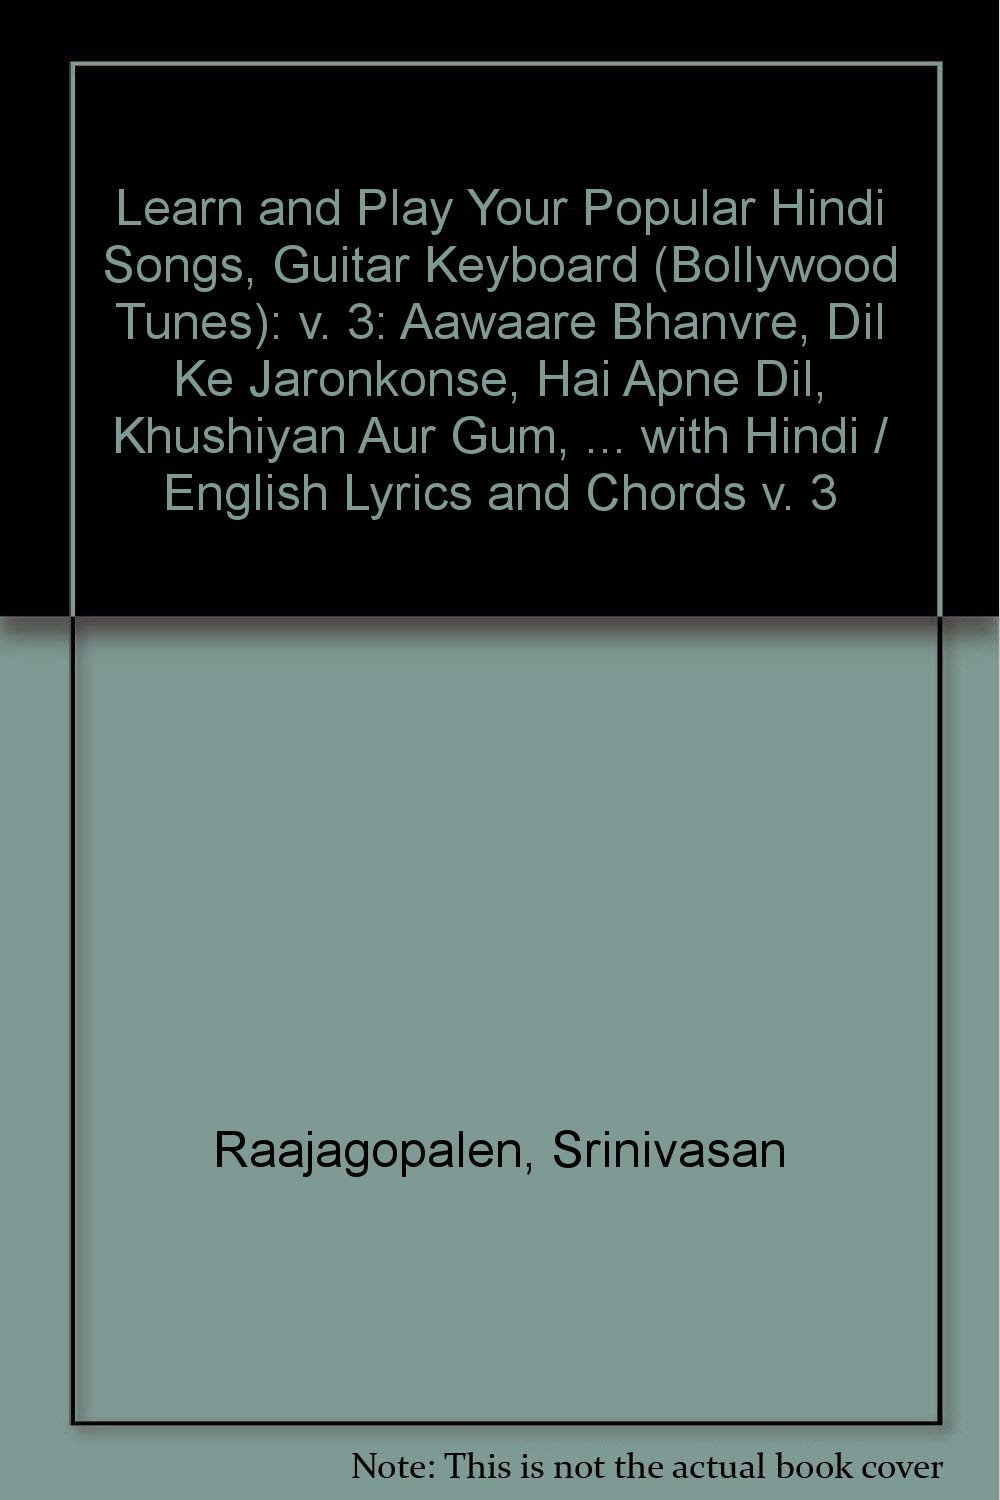 Learn And Play Your Popular Hindi Songs Guitar Keyboard Bollywood